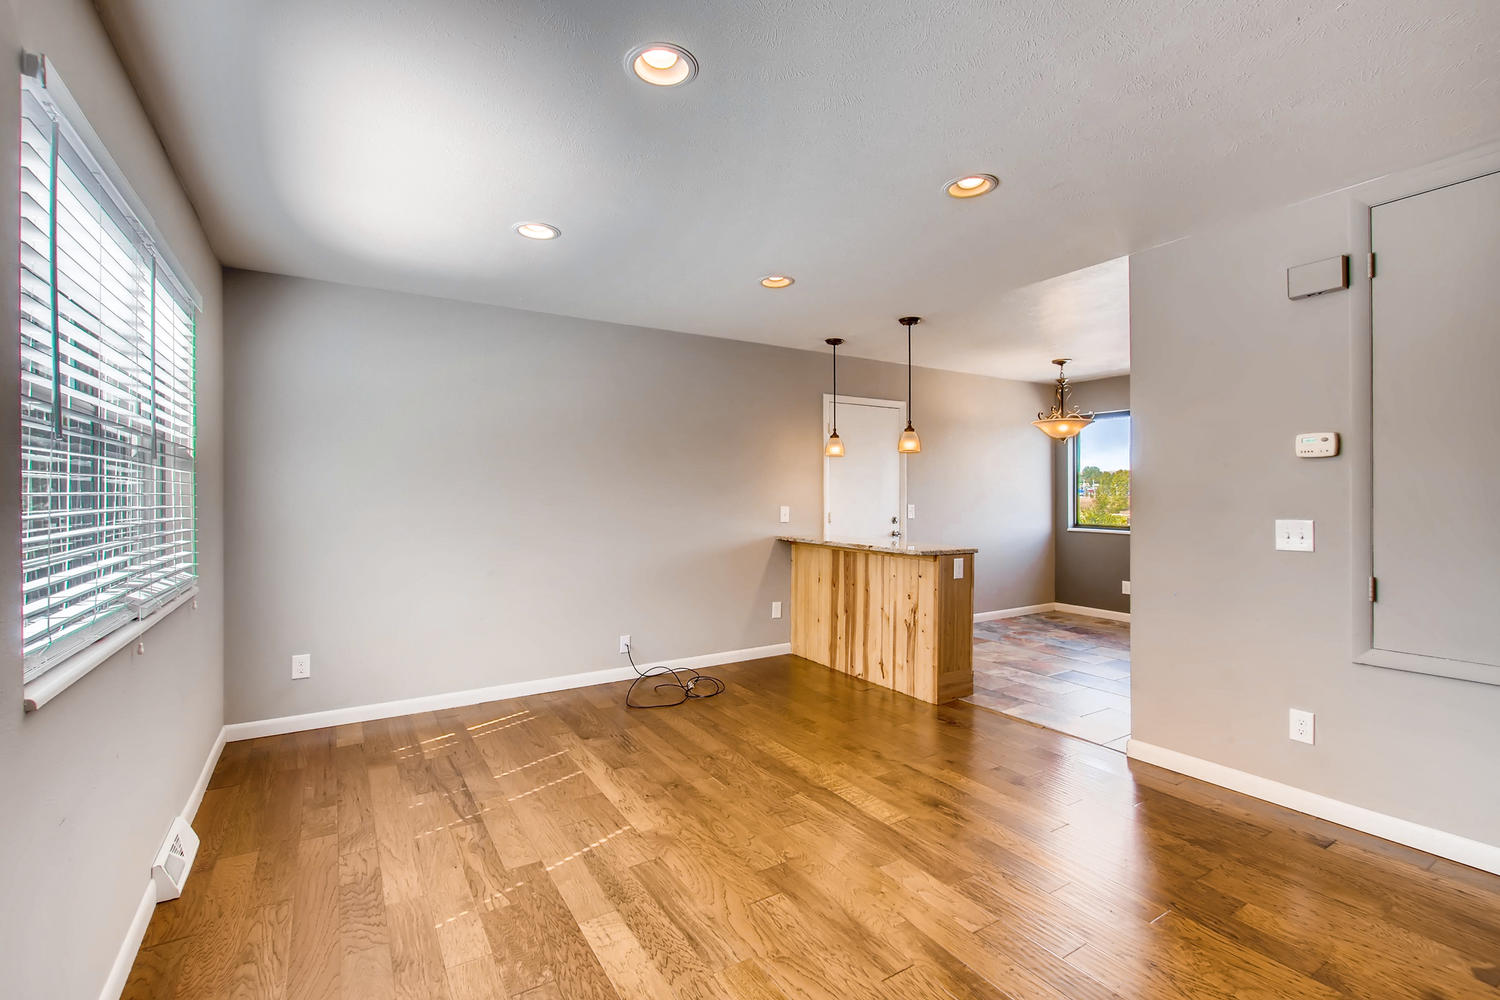 Photo of 10435 W 107th Pl, Westminster, CO, 80021